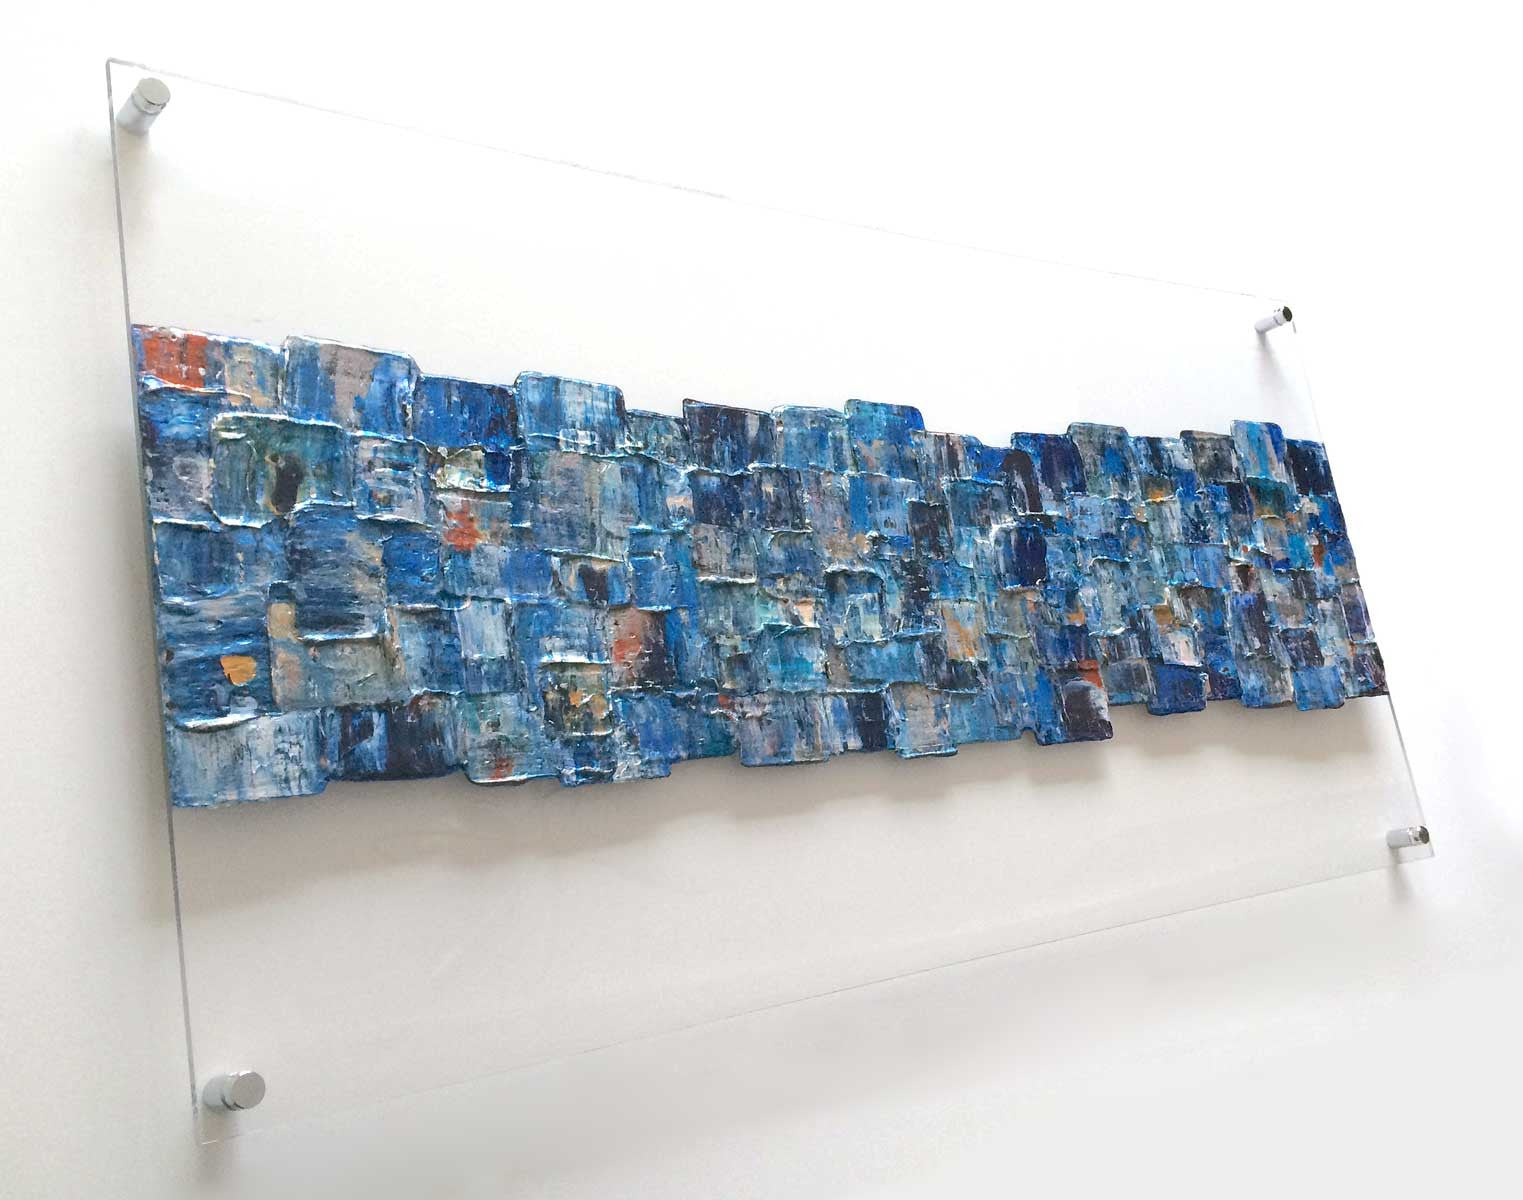 'Interwoven Blue' painting on clear plexiglass